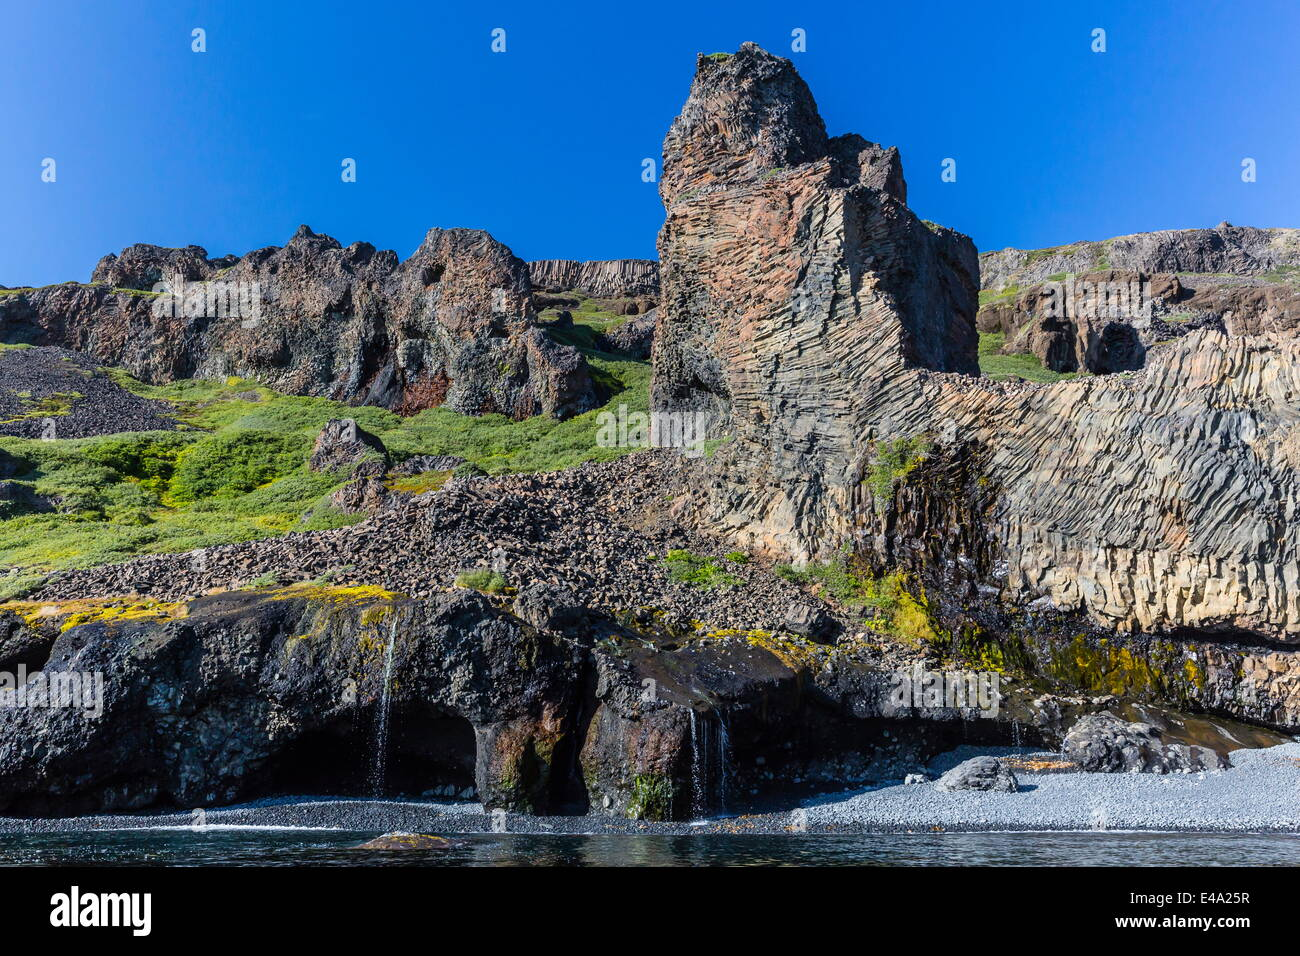 Amazing examples of columnar basalt on the southern coast of Disko Island, Kuannersuit, Greenland, Polar Regions - Stock Image